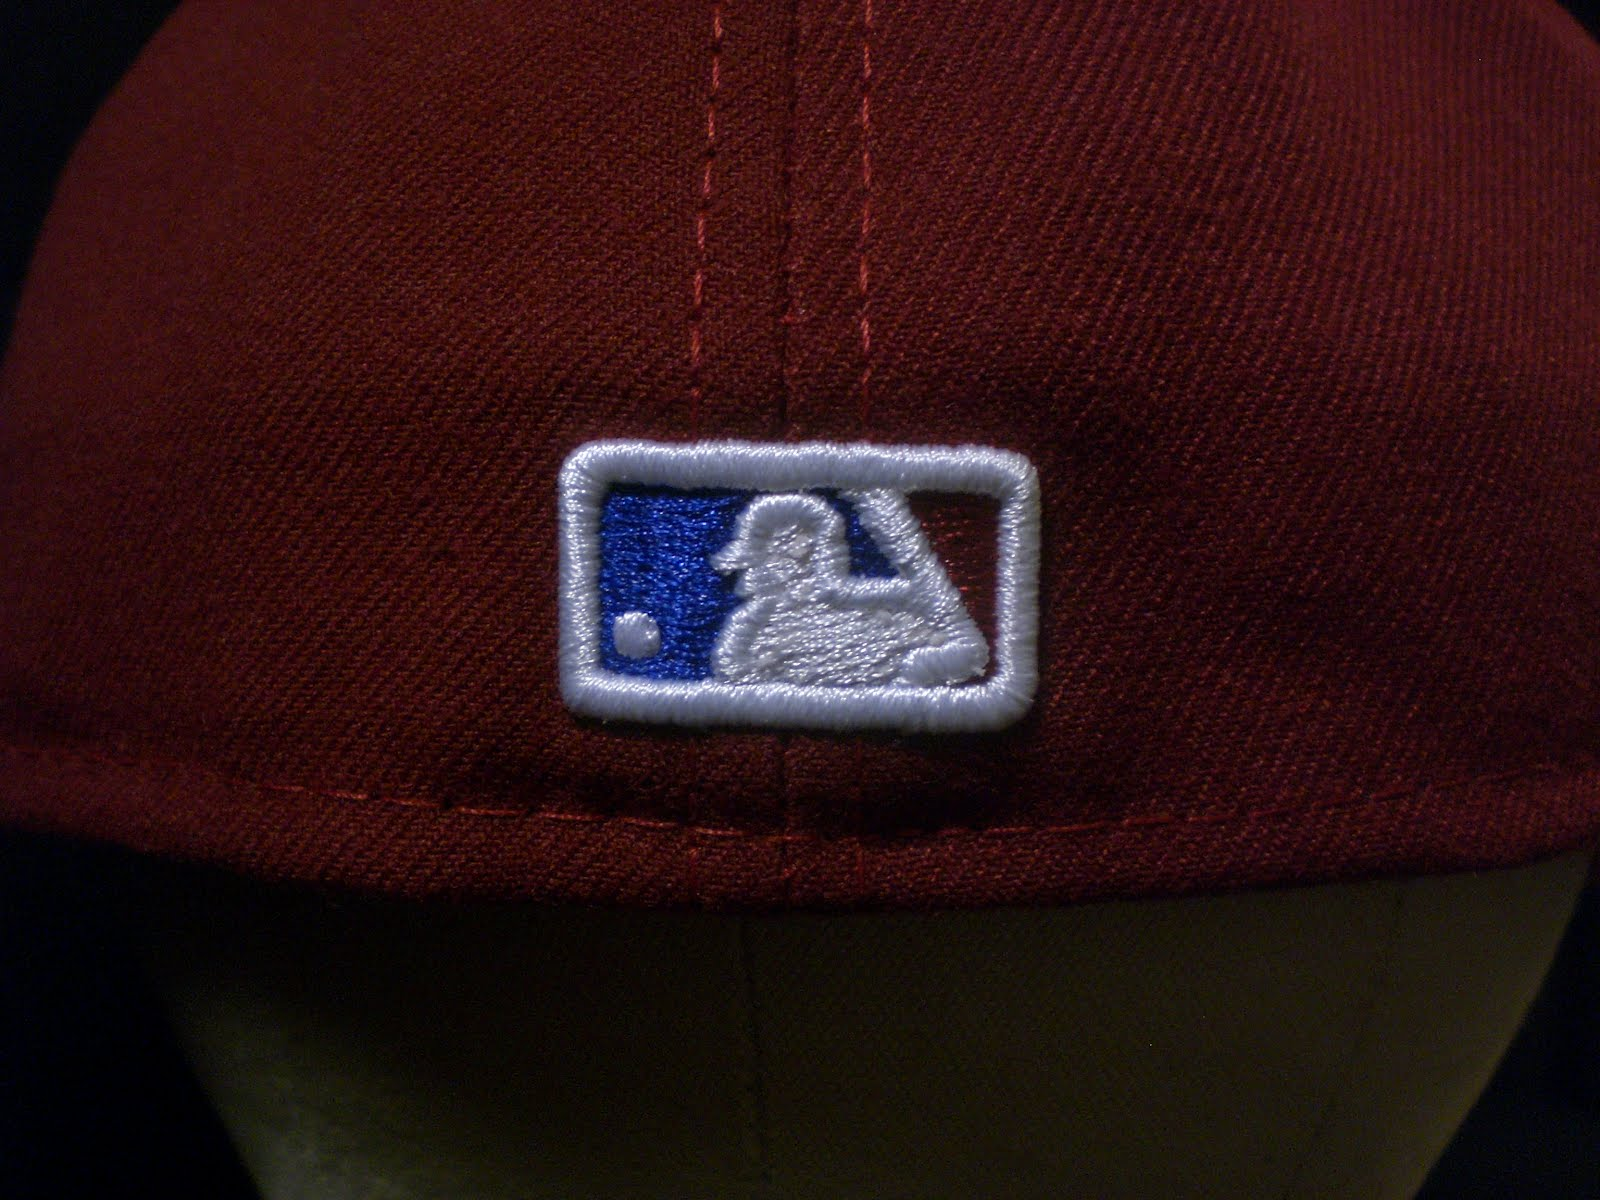 separation shoes 5faf6 5b857 ... something that is extremely new to this specific version of the cap  since the Phillies retired this version of their uniform a few years before  the MLB ...